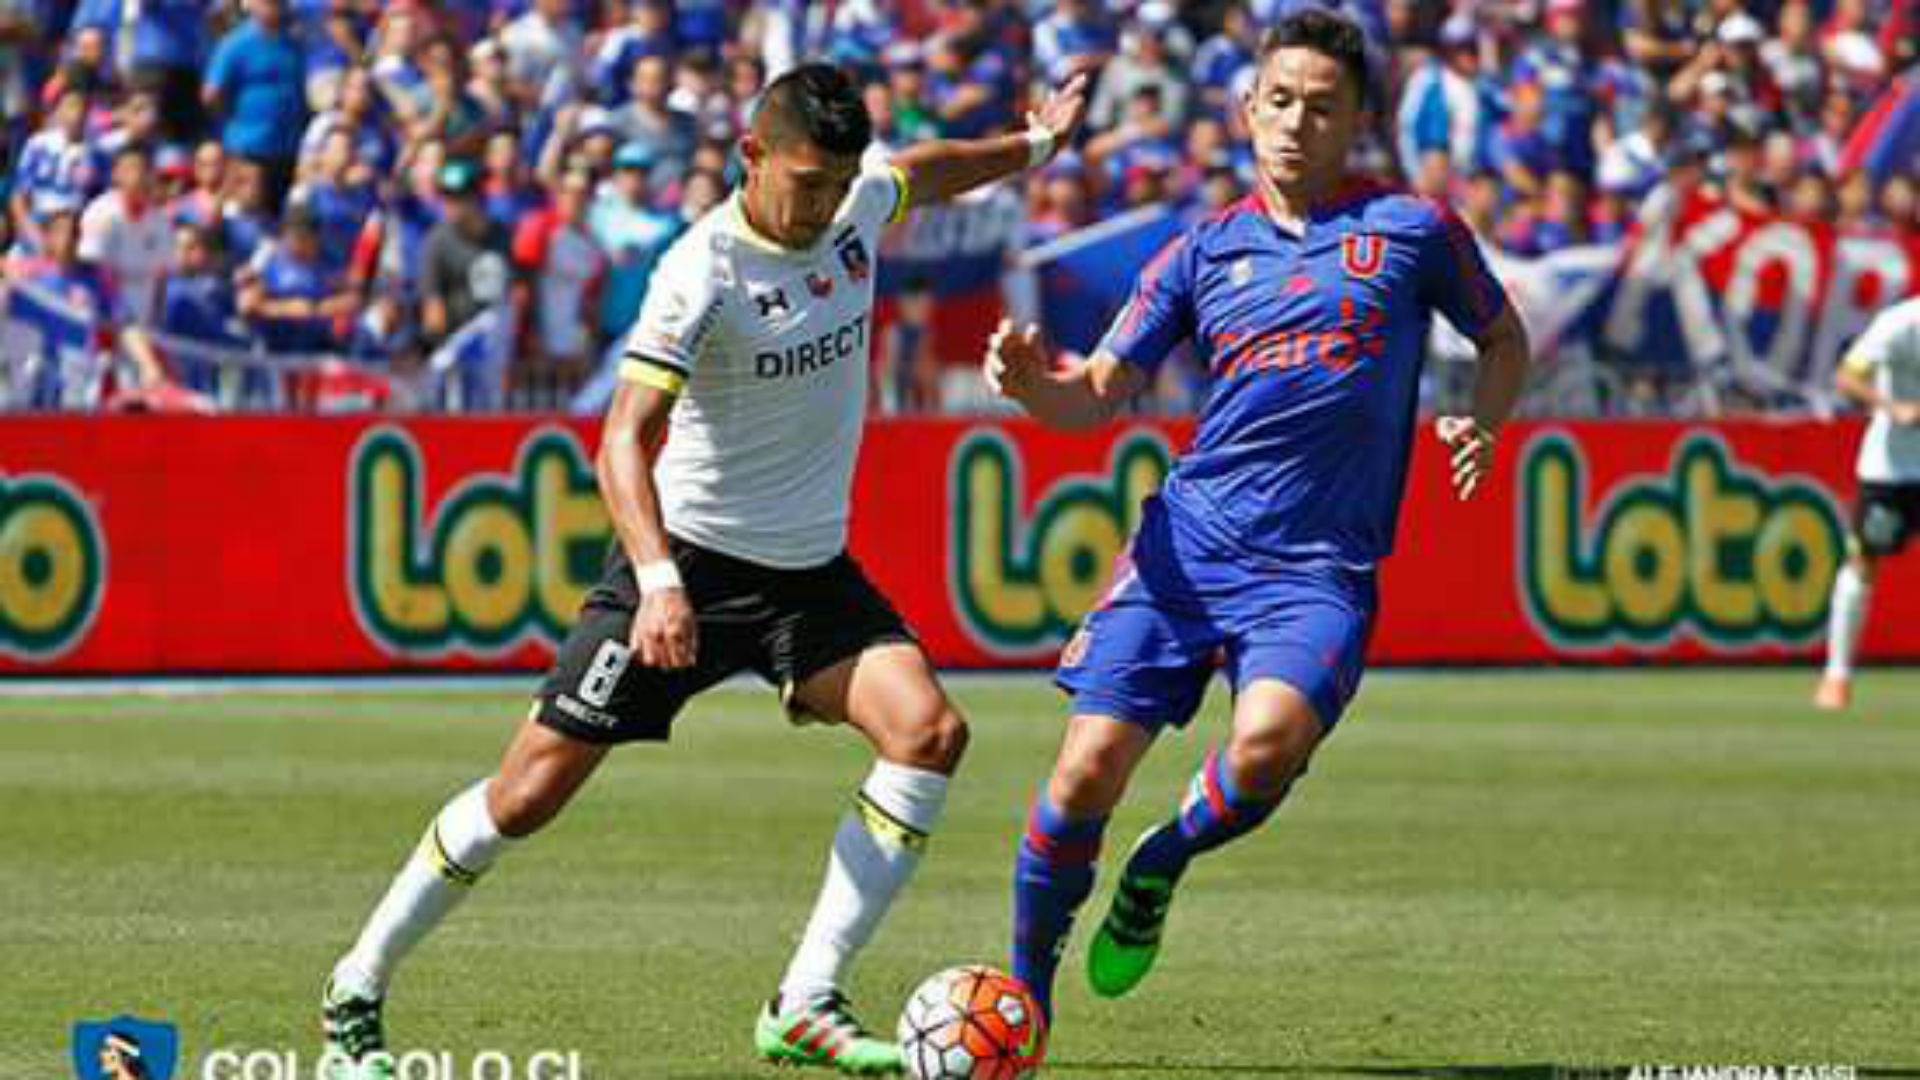 Superclásico chileno. Universidad Chile Colo Colo